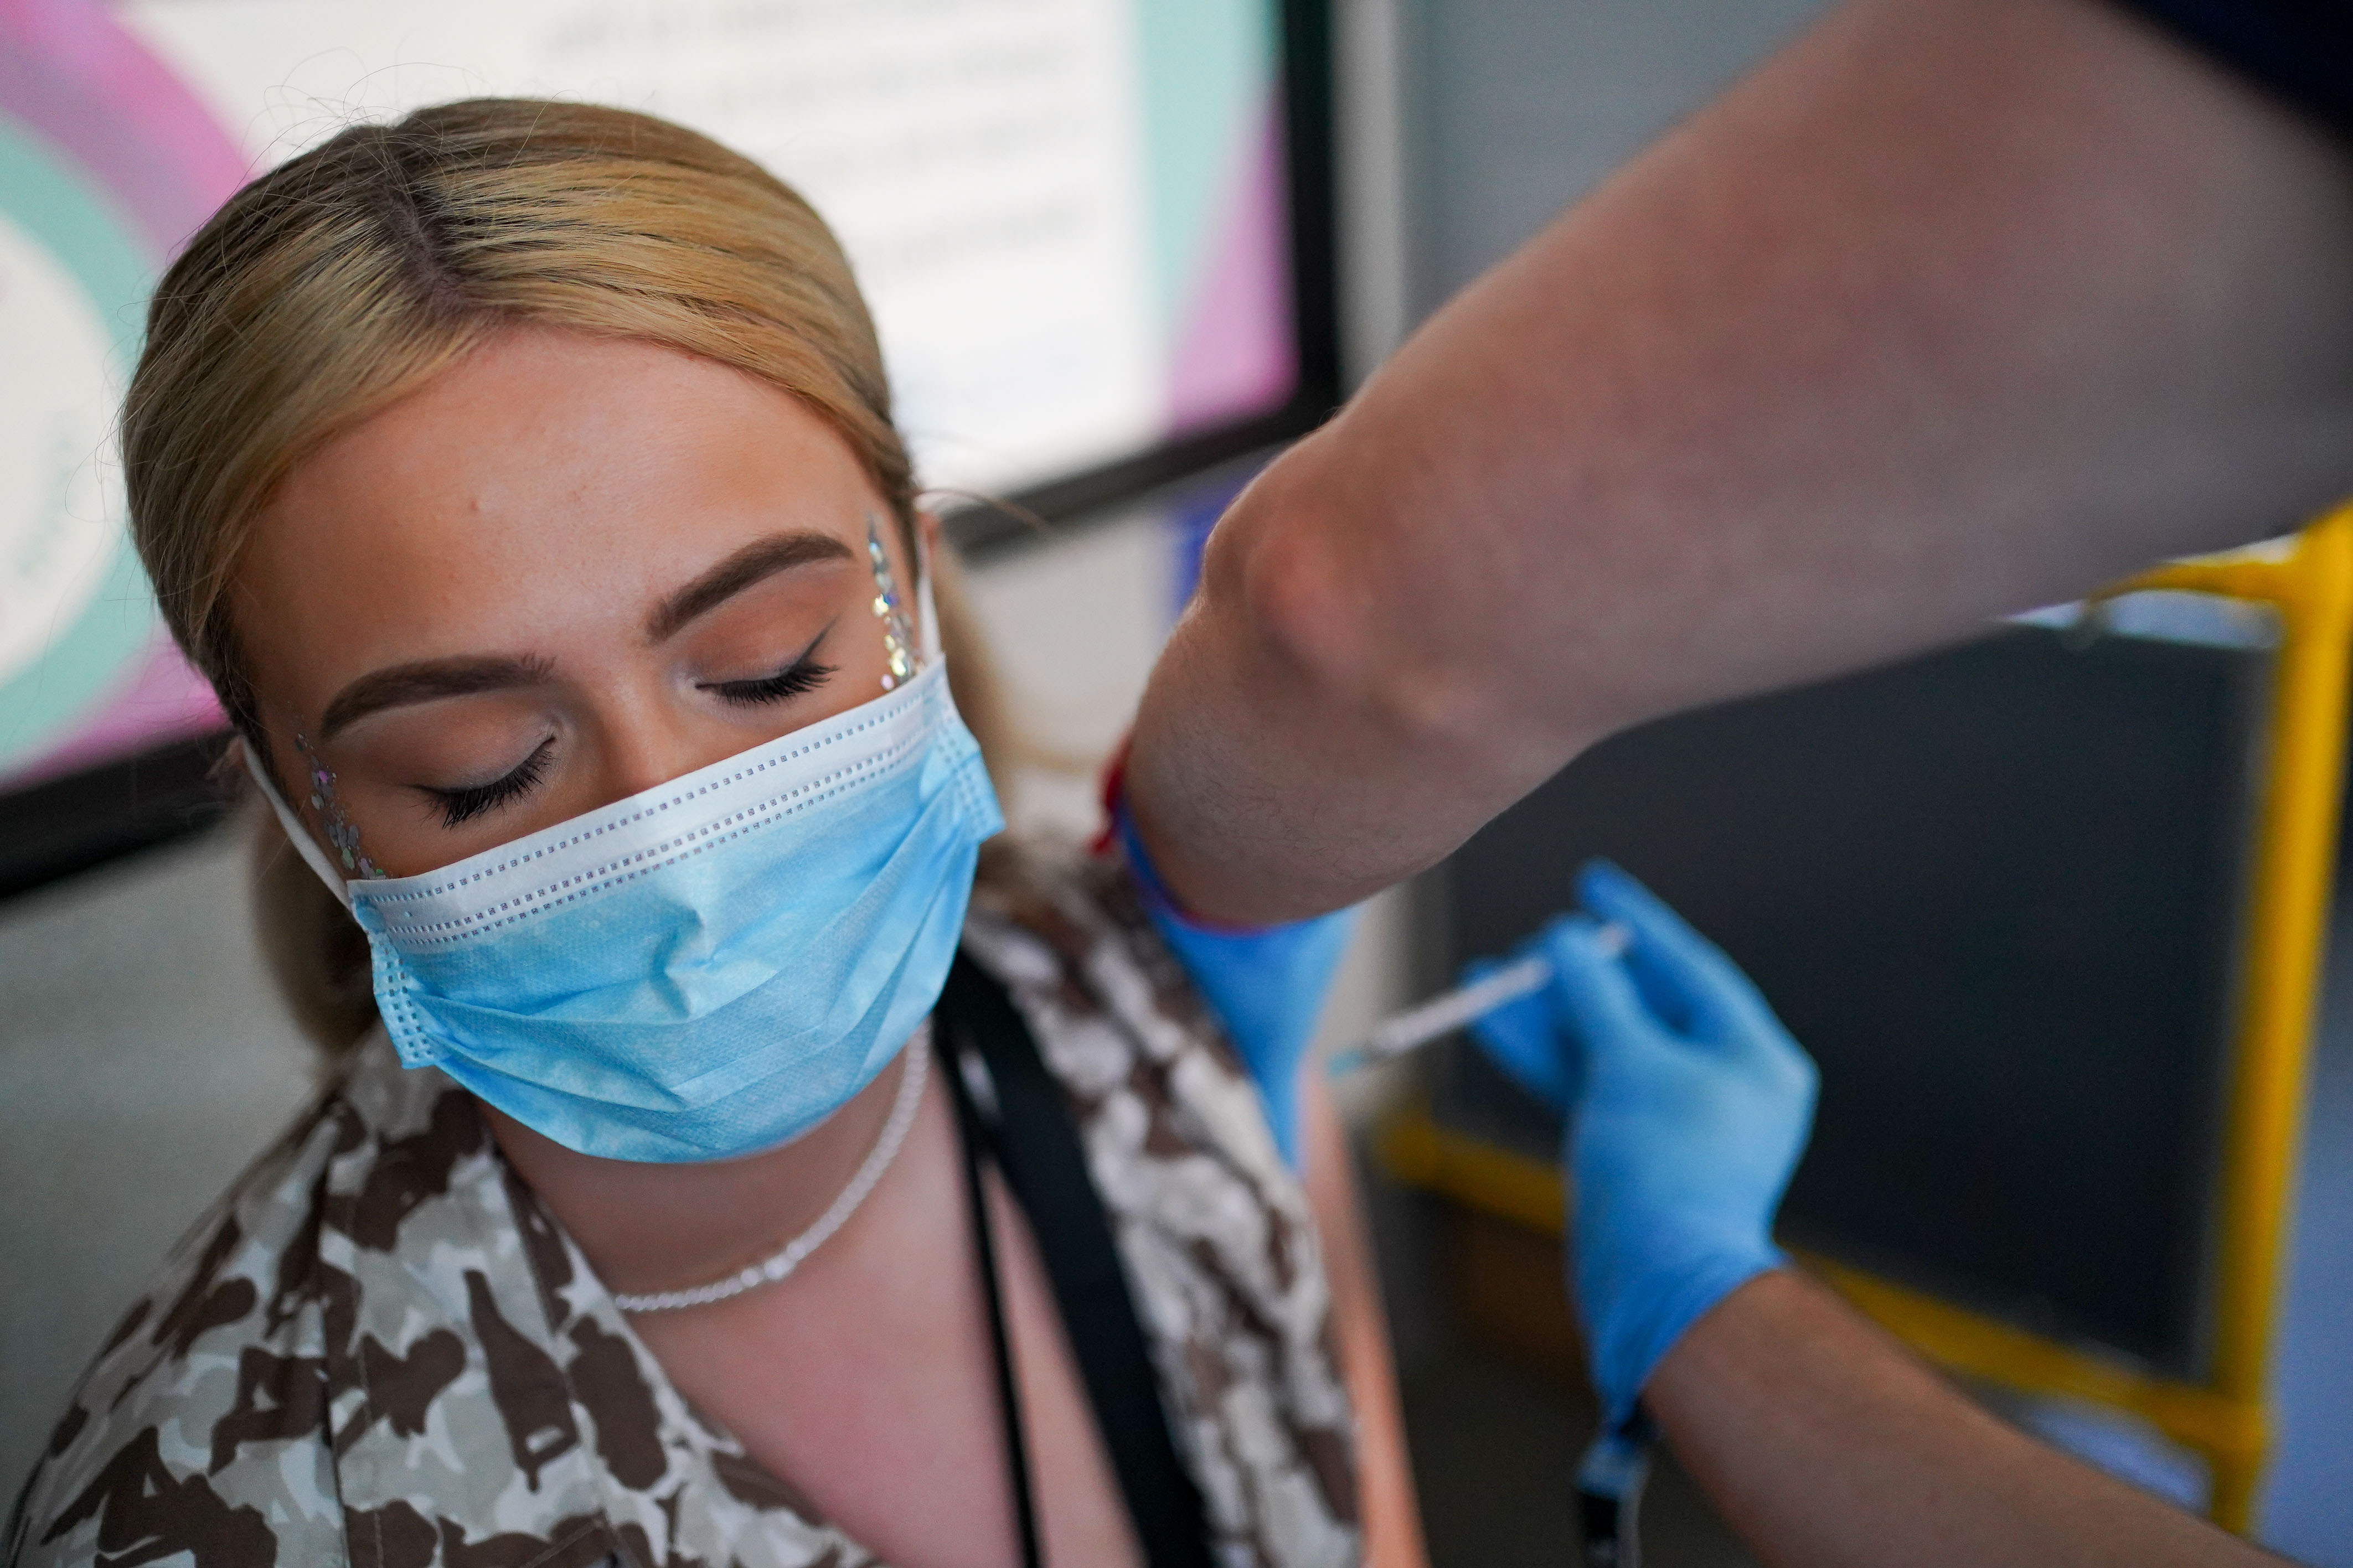 <p>Festival goer Ellie Harries receives her 2nd Pfizer vaccine dose at a Covid-19 vaccination bus at Latitude festival in Henham Park, Southwold, Suffolk. Picture date: Sunday July 25, 2021. (Photo by Jacob King/PA Images via Getty Images)</p>